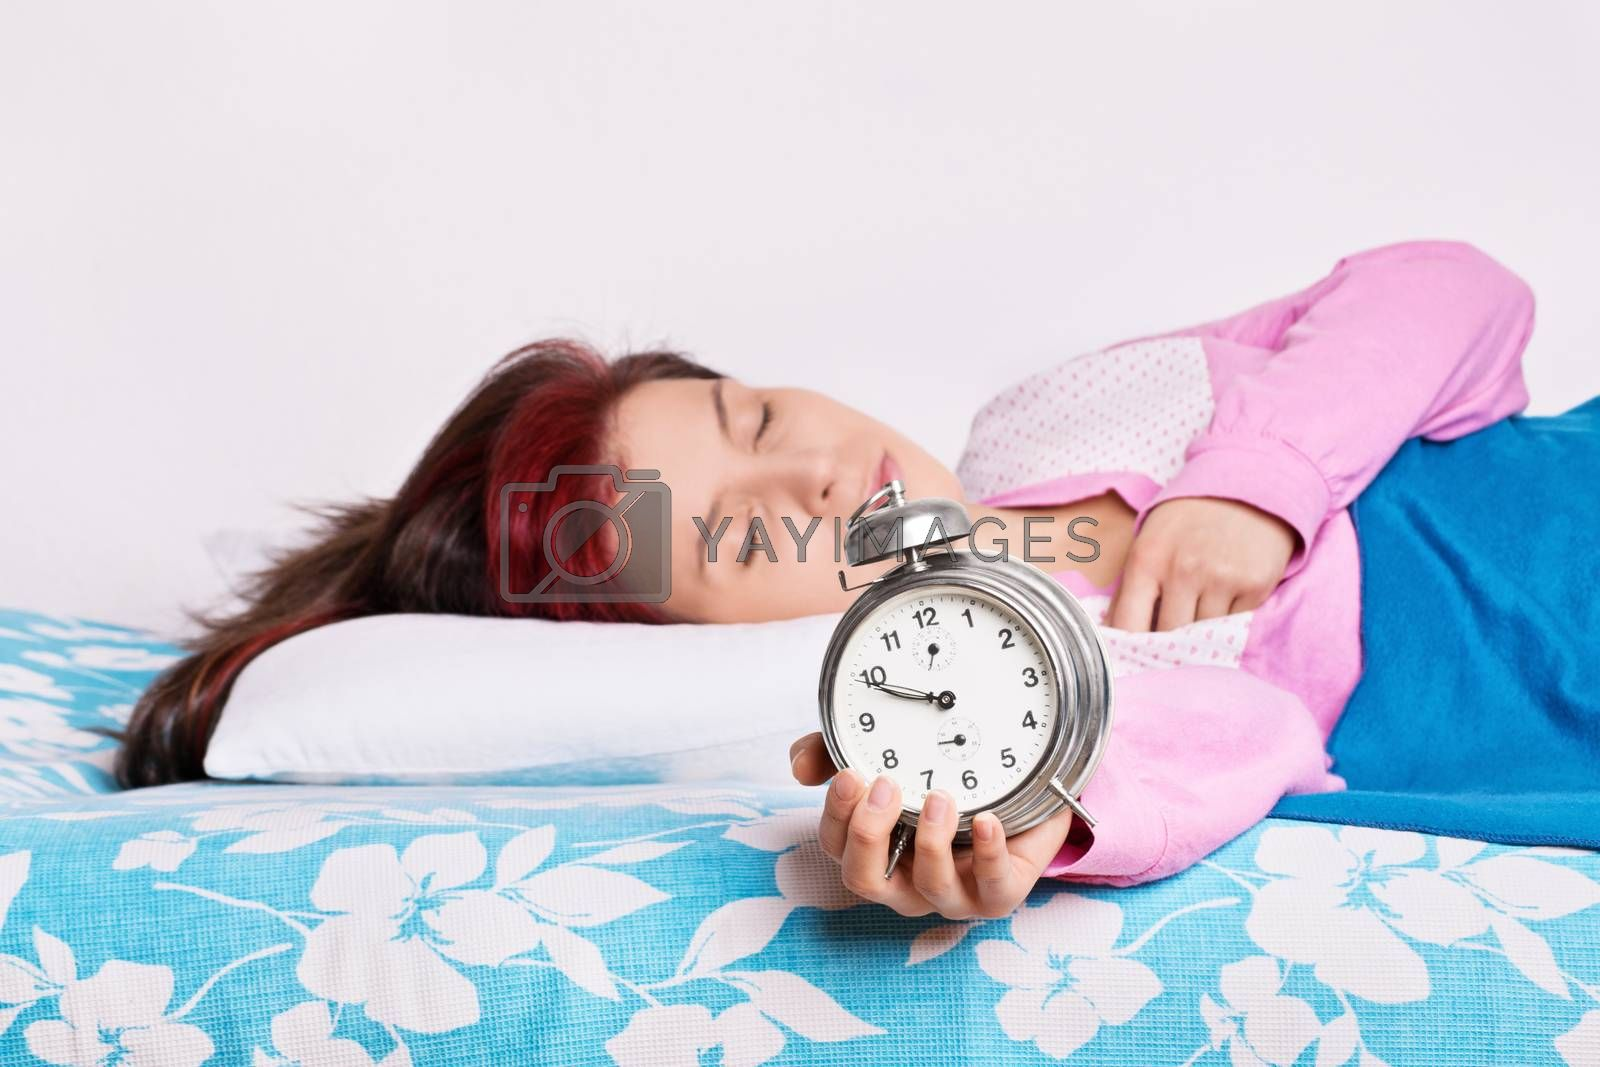 Young woman fallen asleep with alarm clock in hand by Mendelex